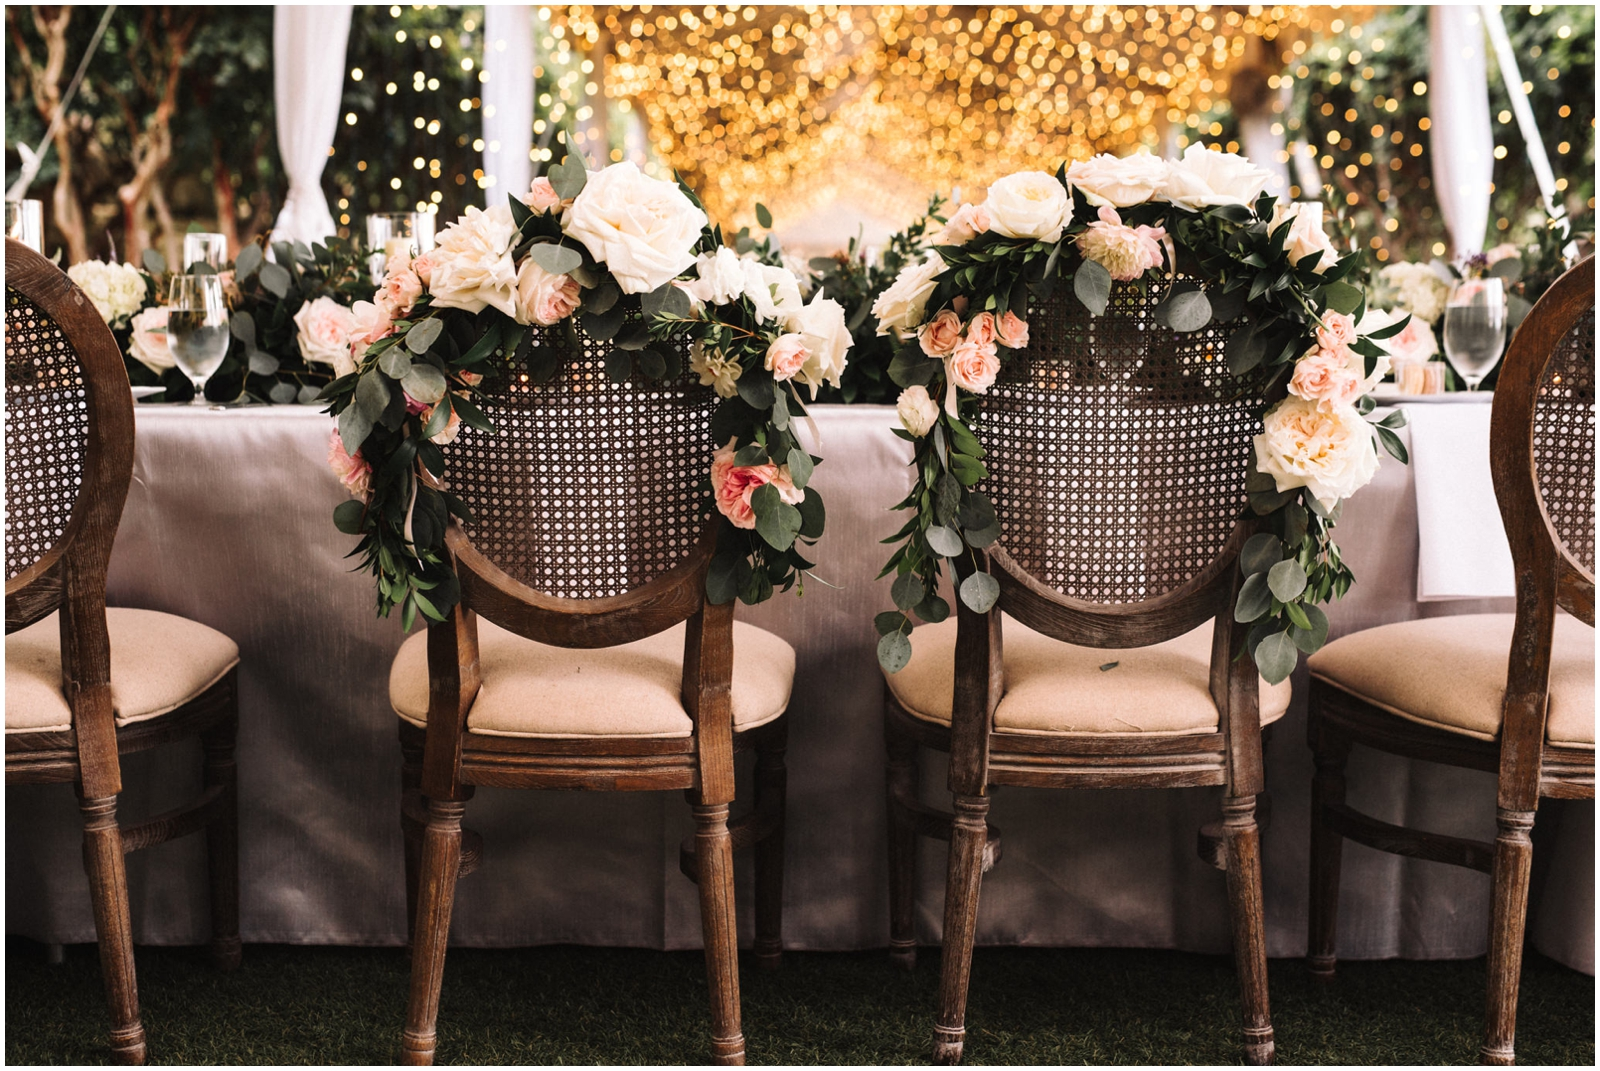 Floral decor on chairs